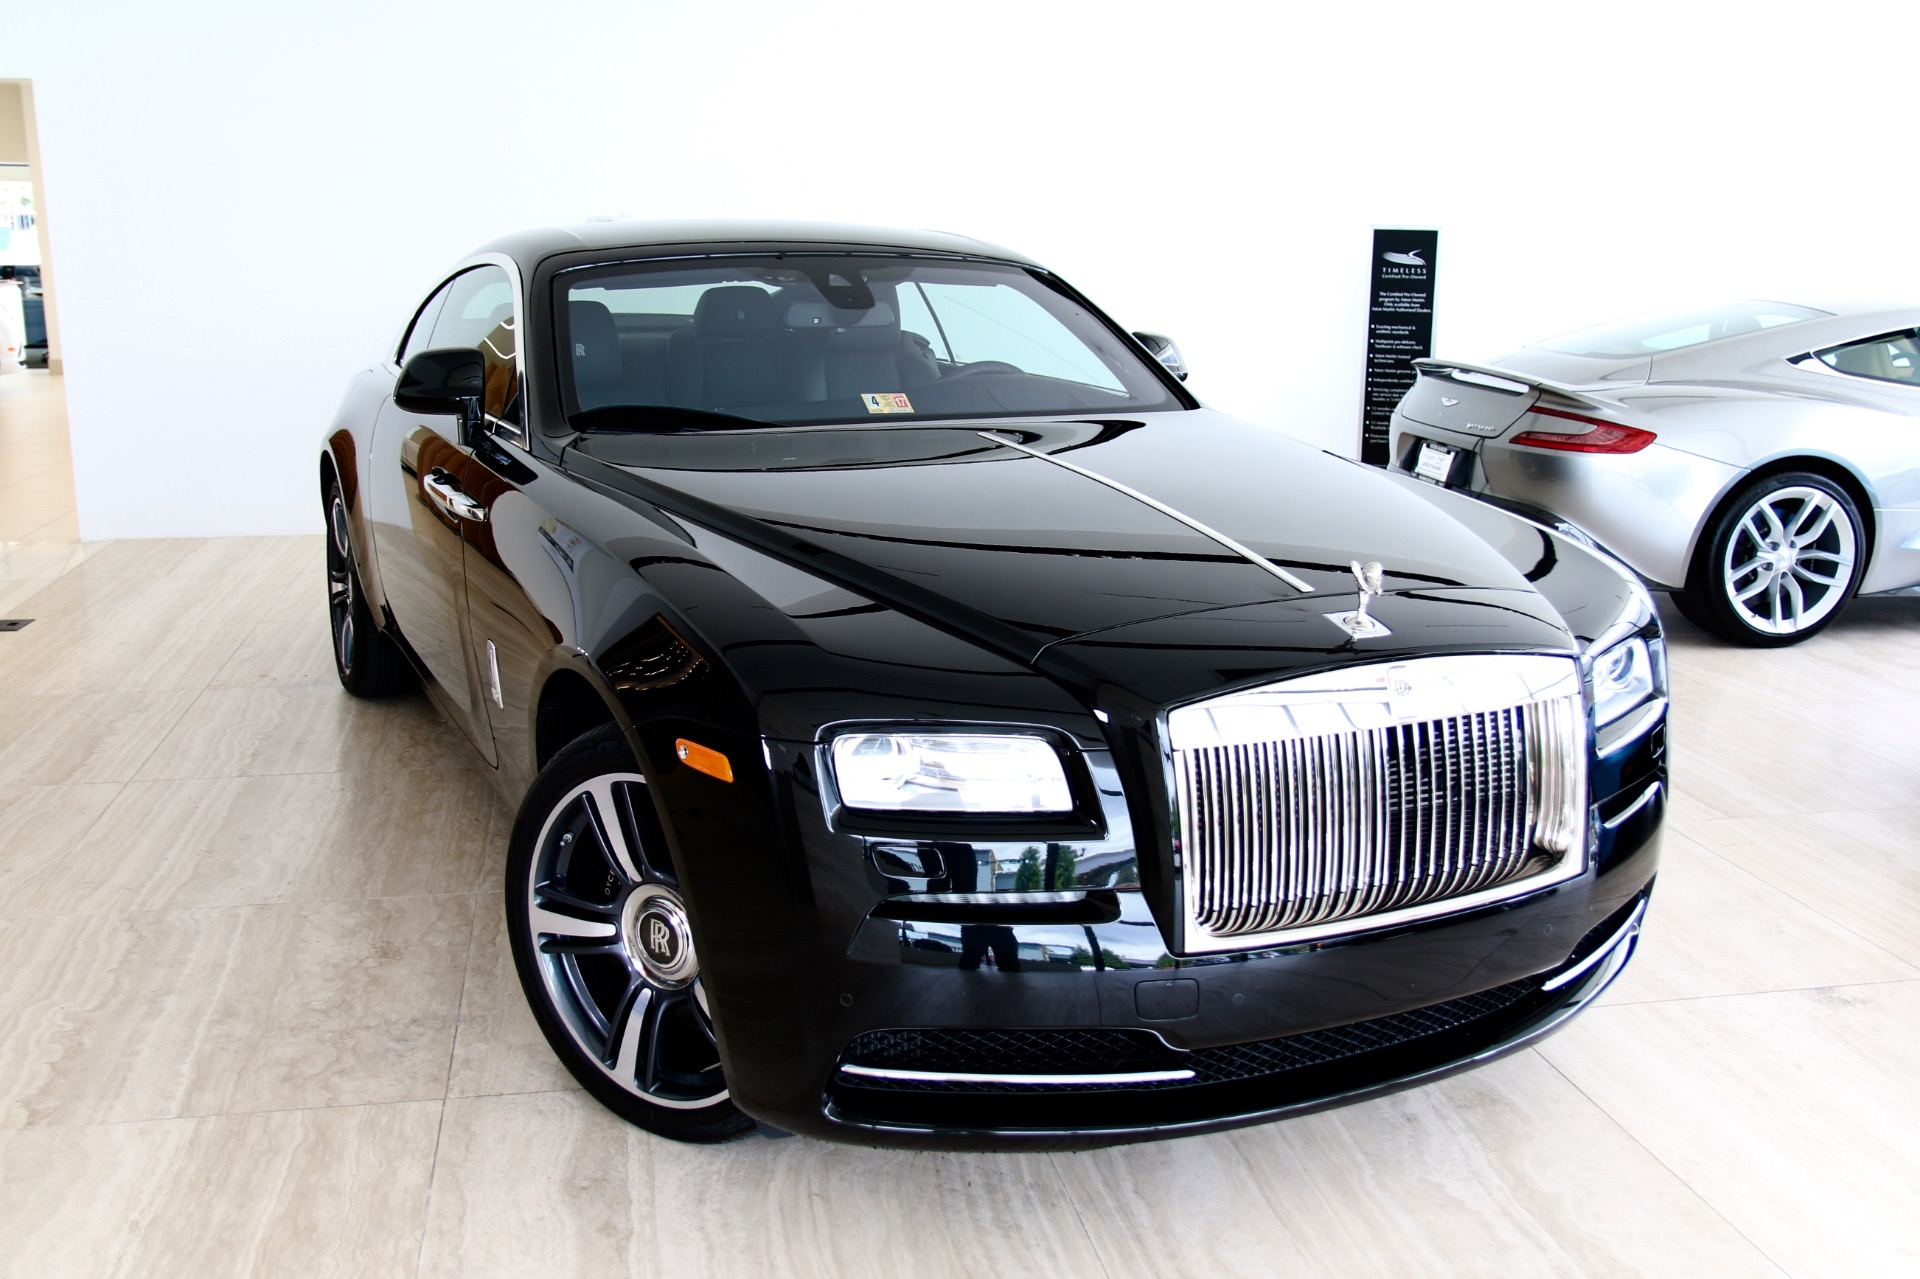 2014 rolls royce wraith stock px84416 for sale near vienna va va rolls royce dealer for. Black Bedroom Furniture Sets. Home Design Ideas